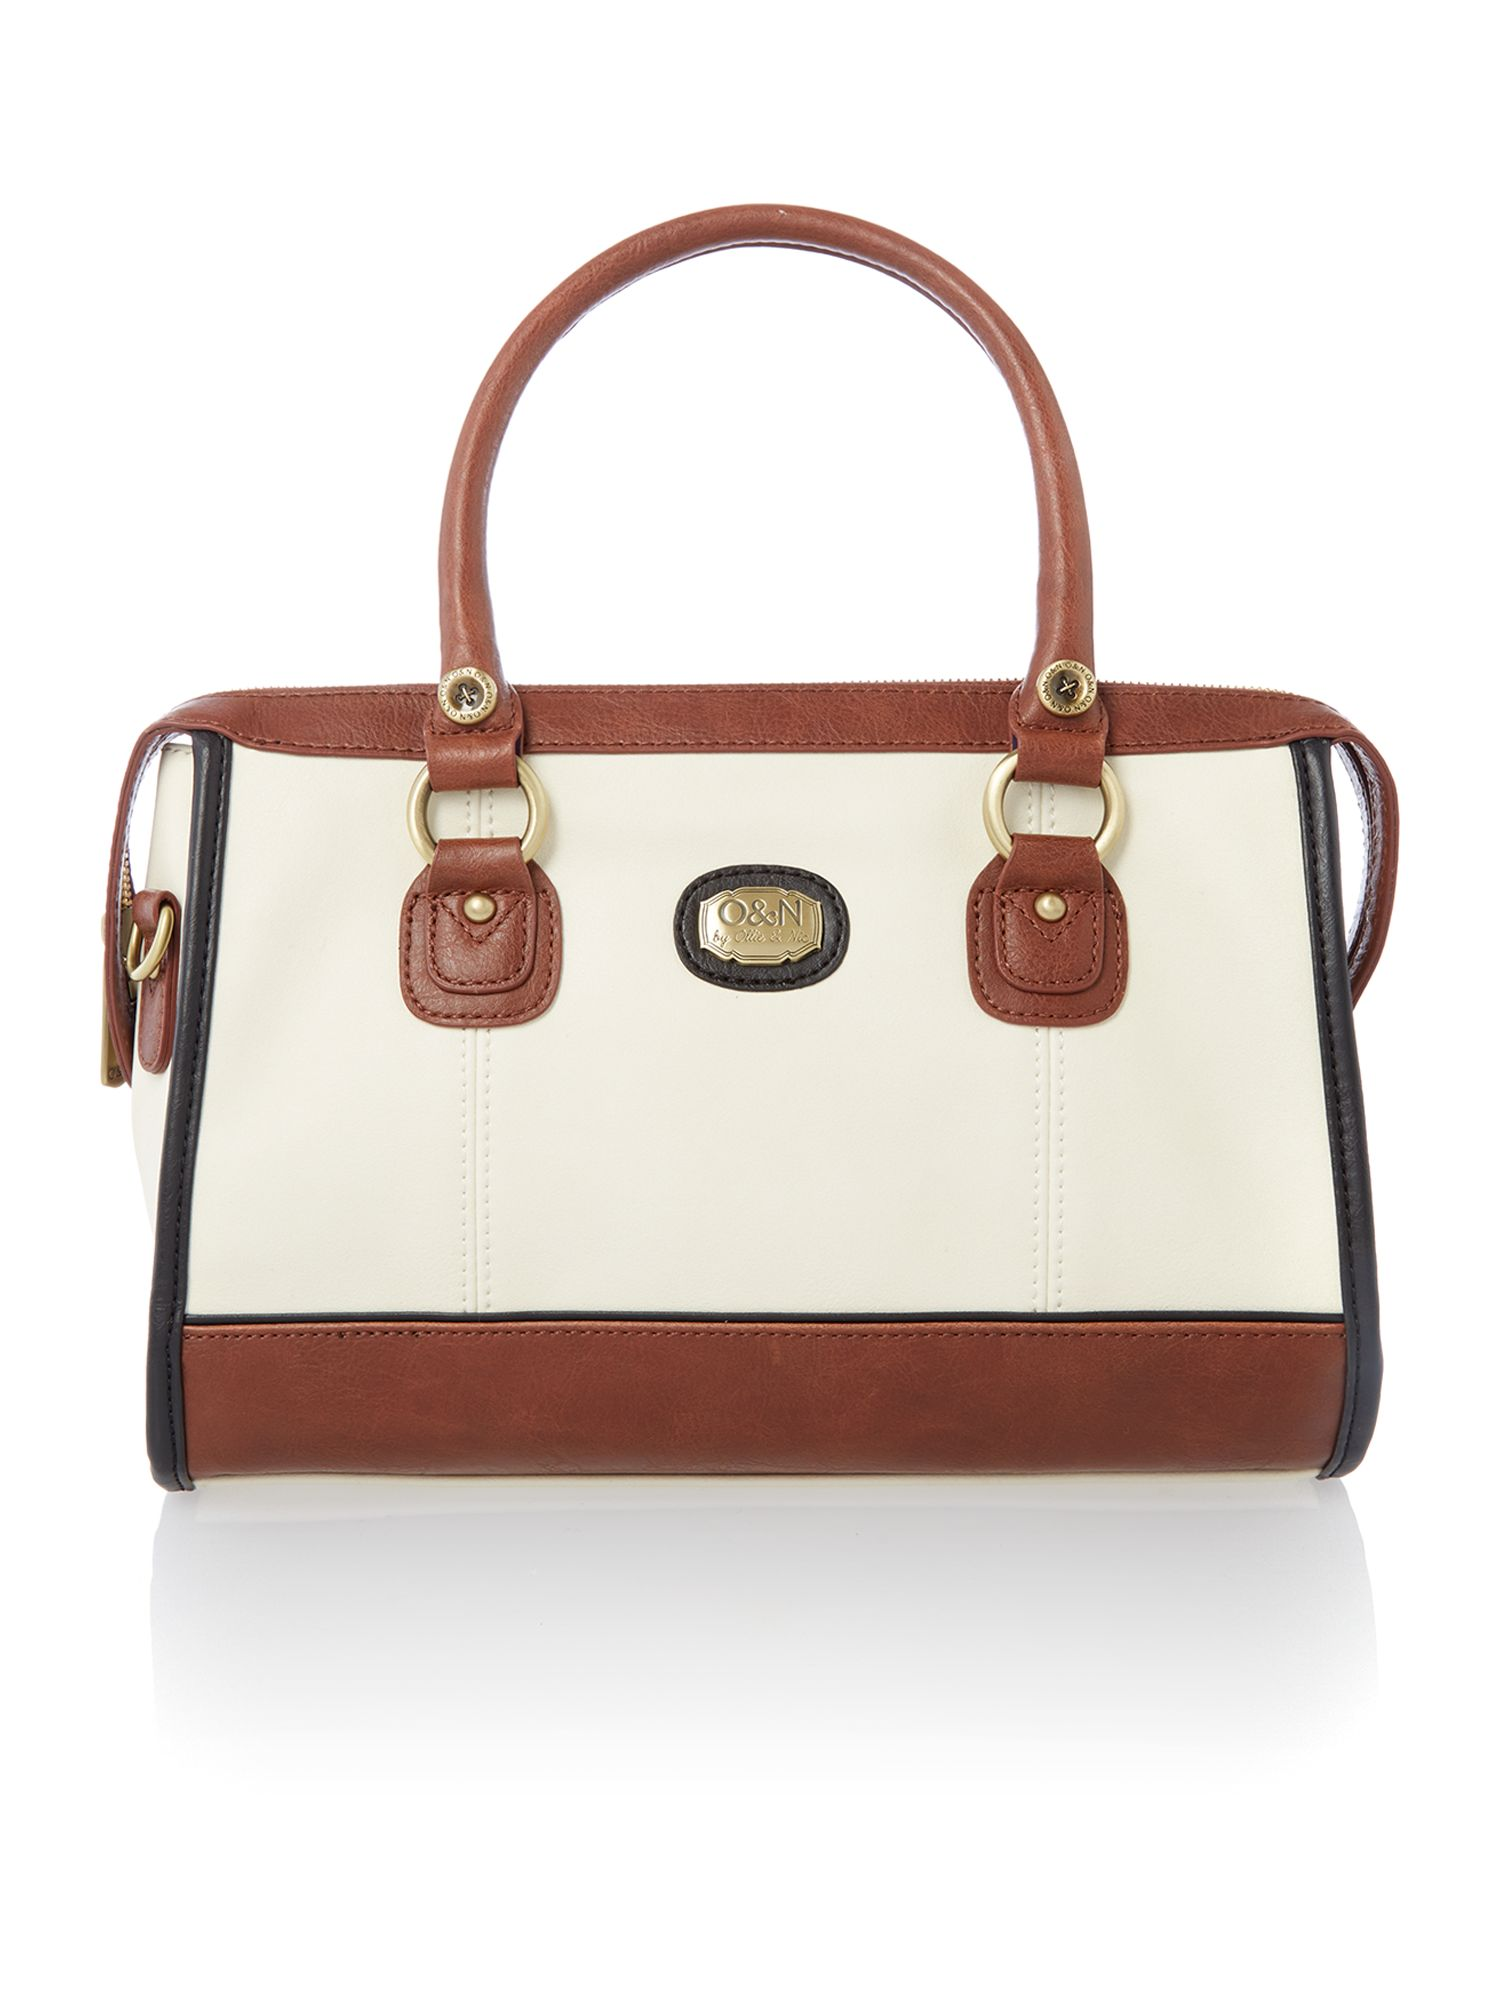 Edwina neutral tote bag